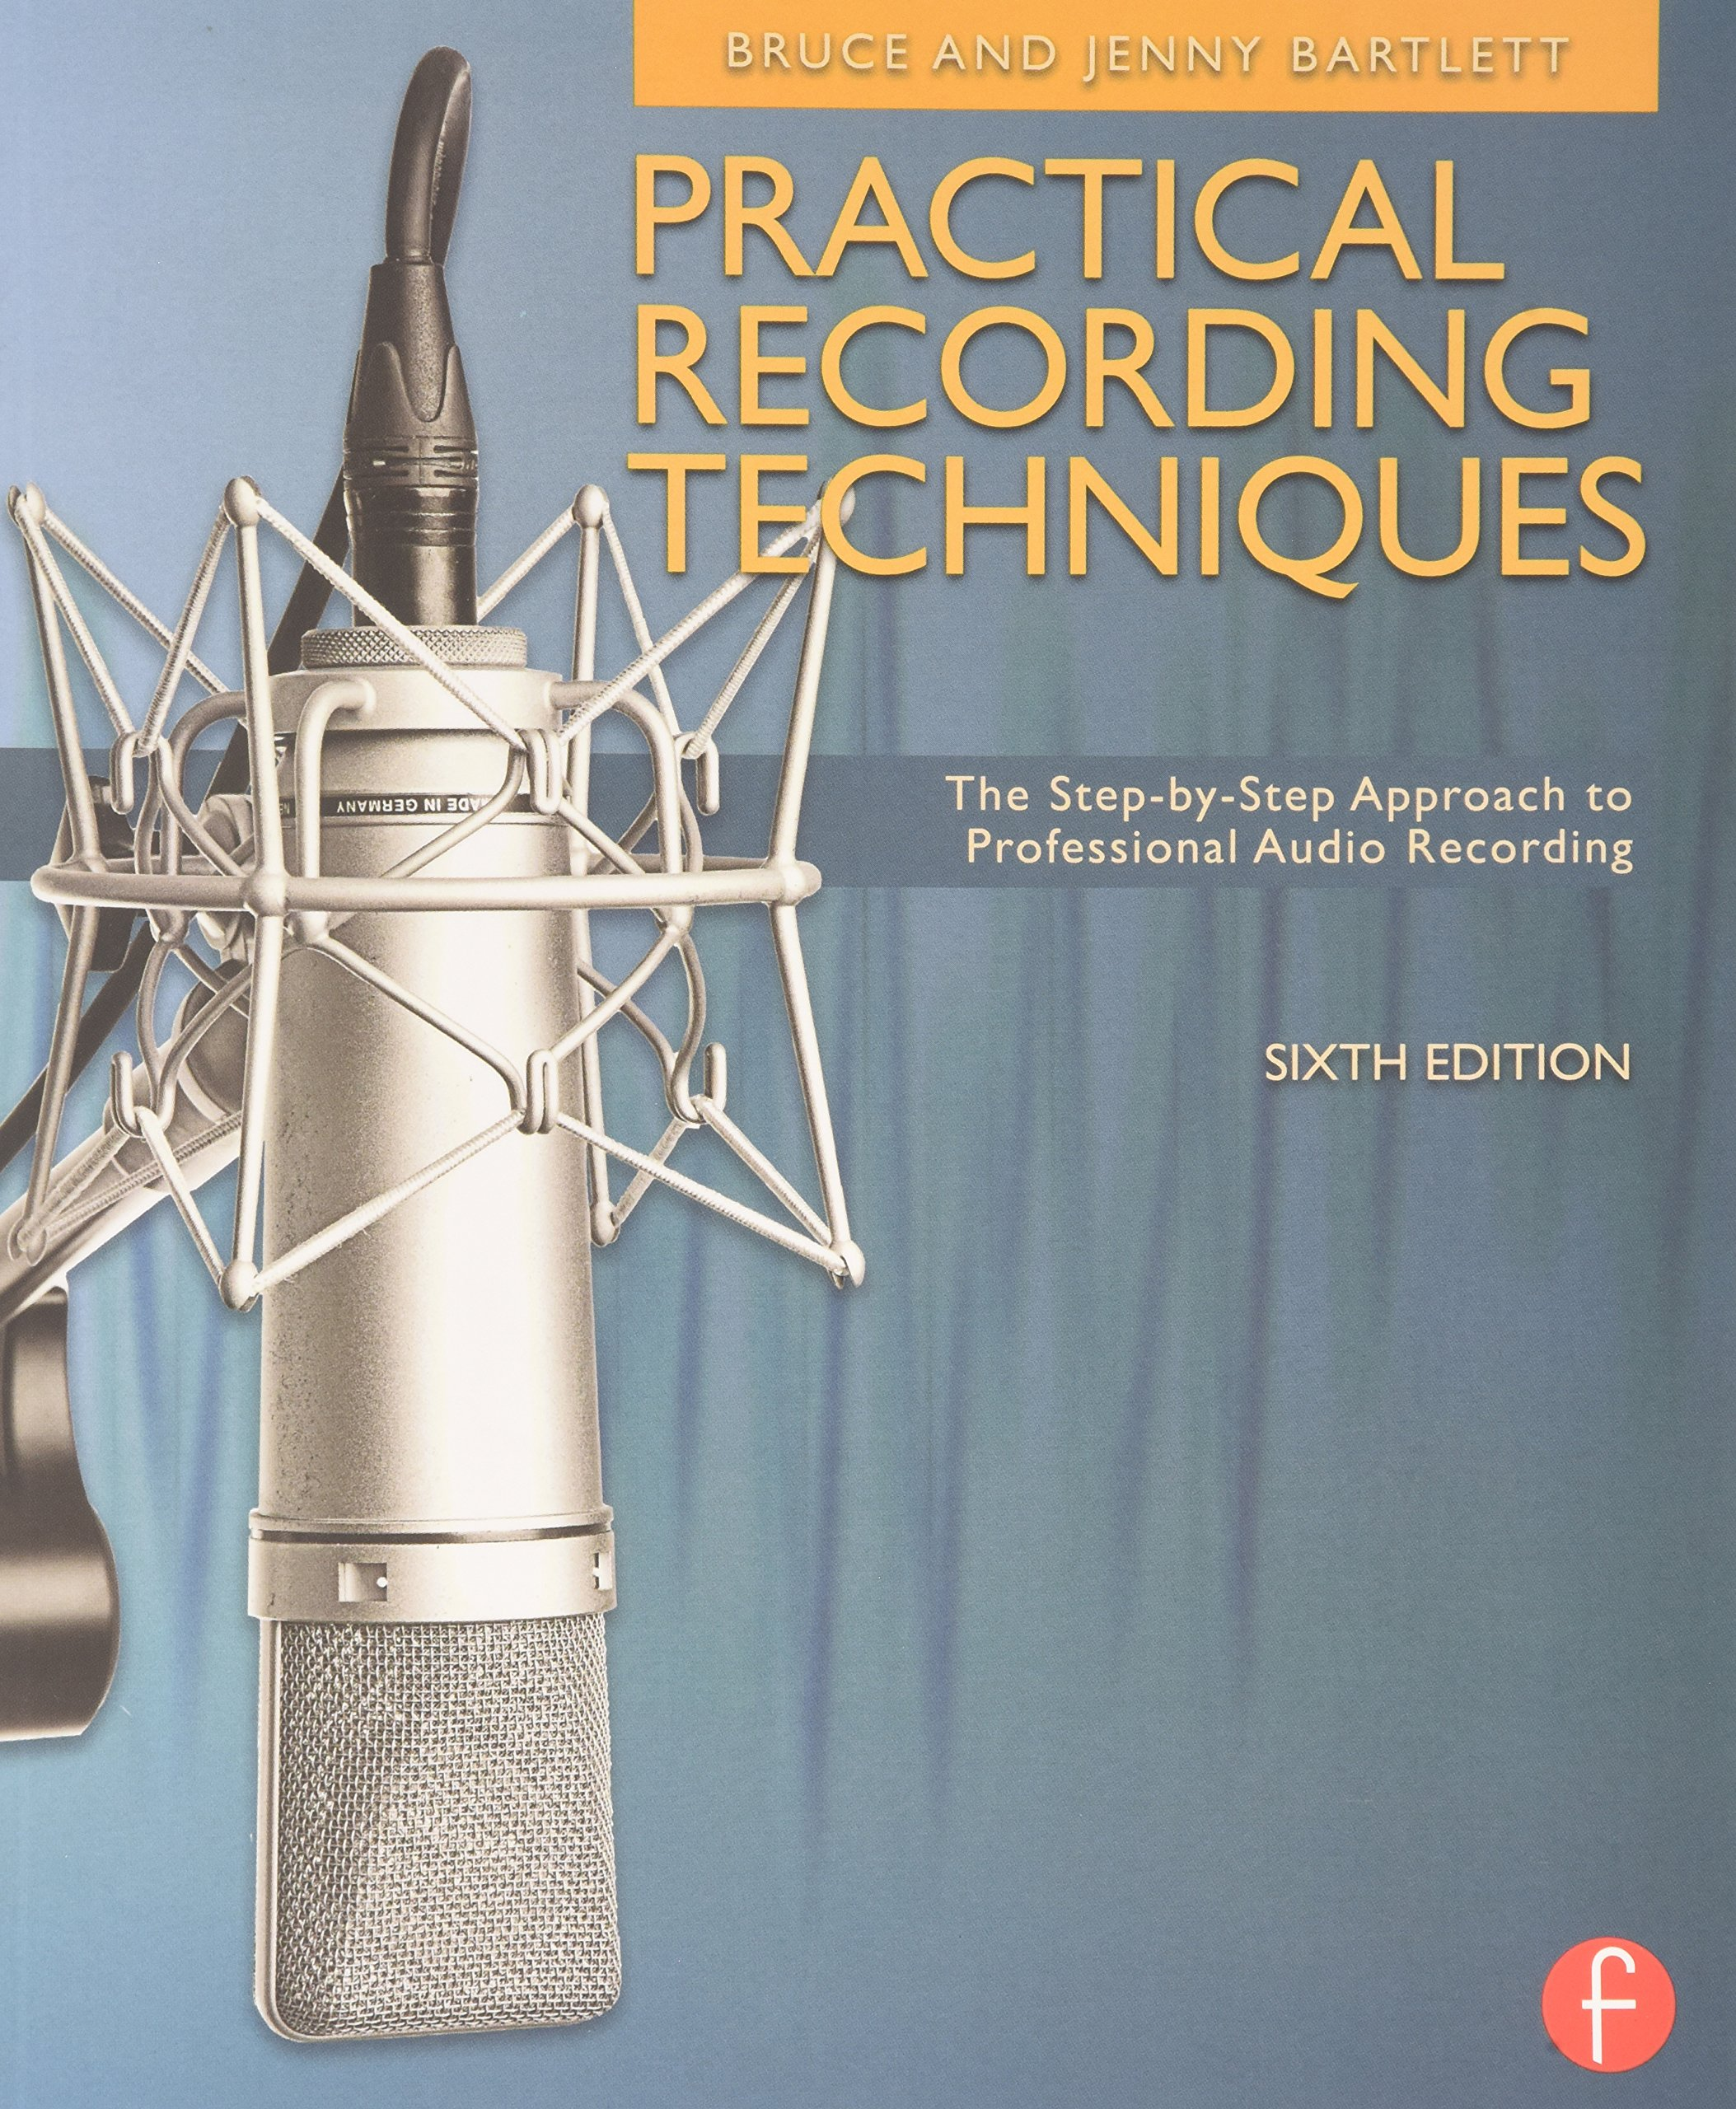 Practical Recording Techniques: The Step- by- Step Approach to Professional Audio Recording